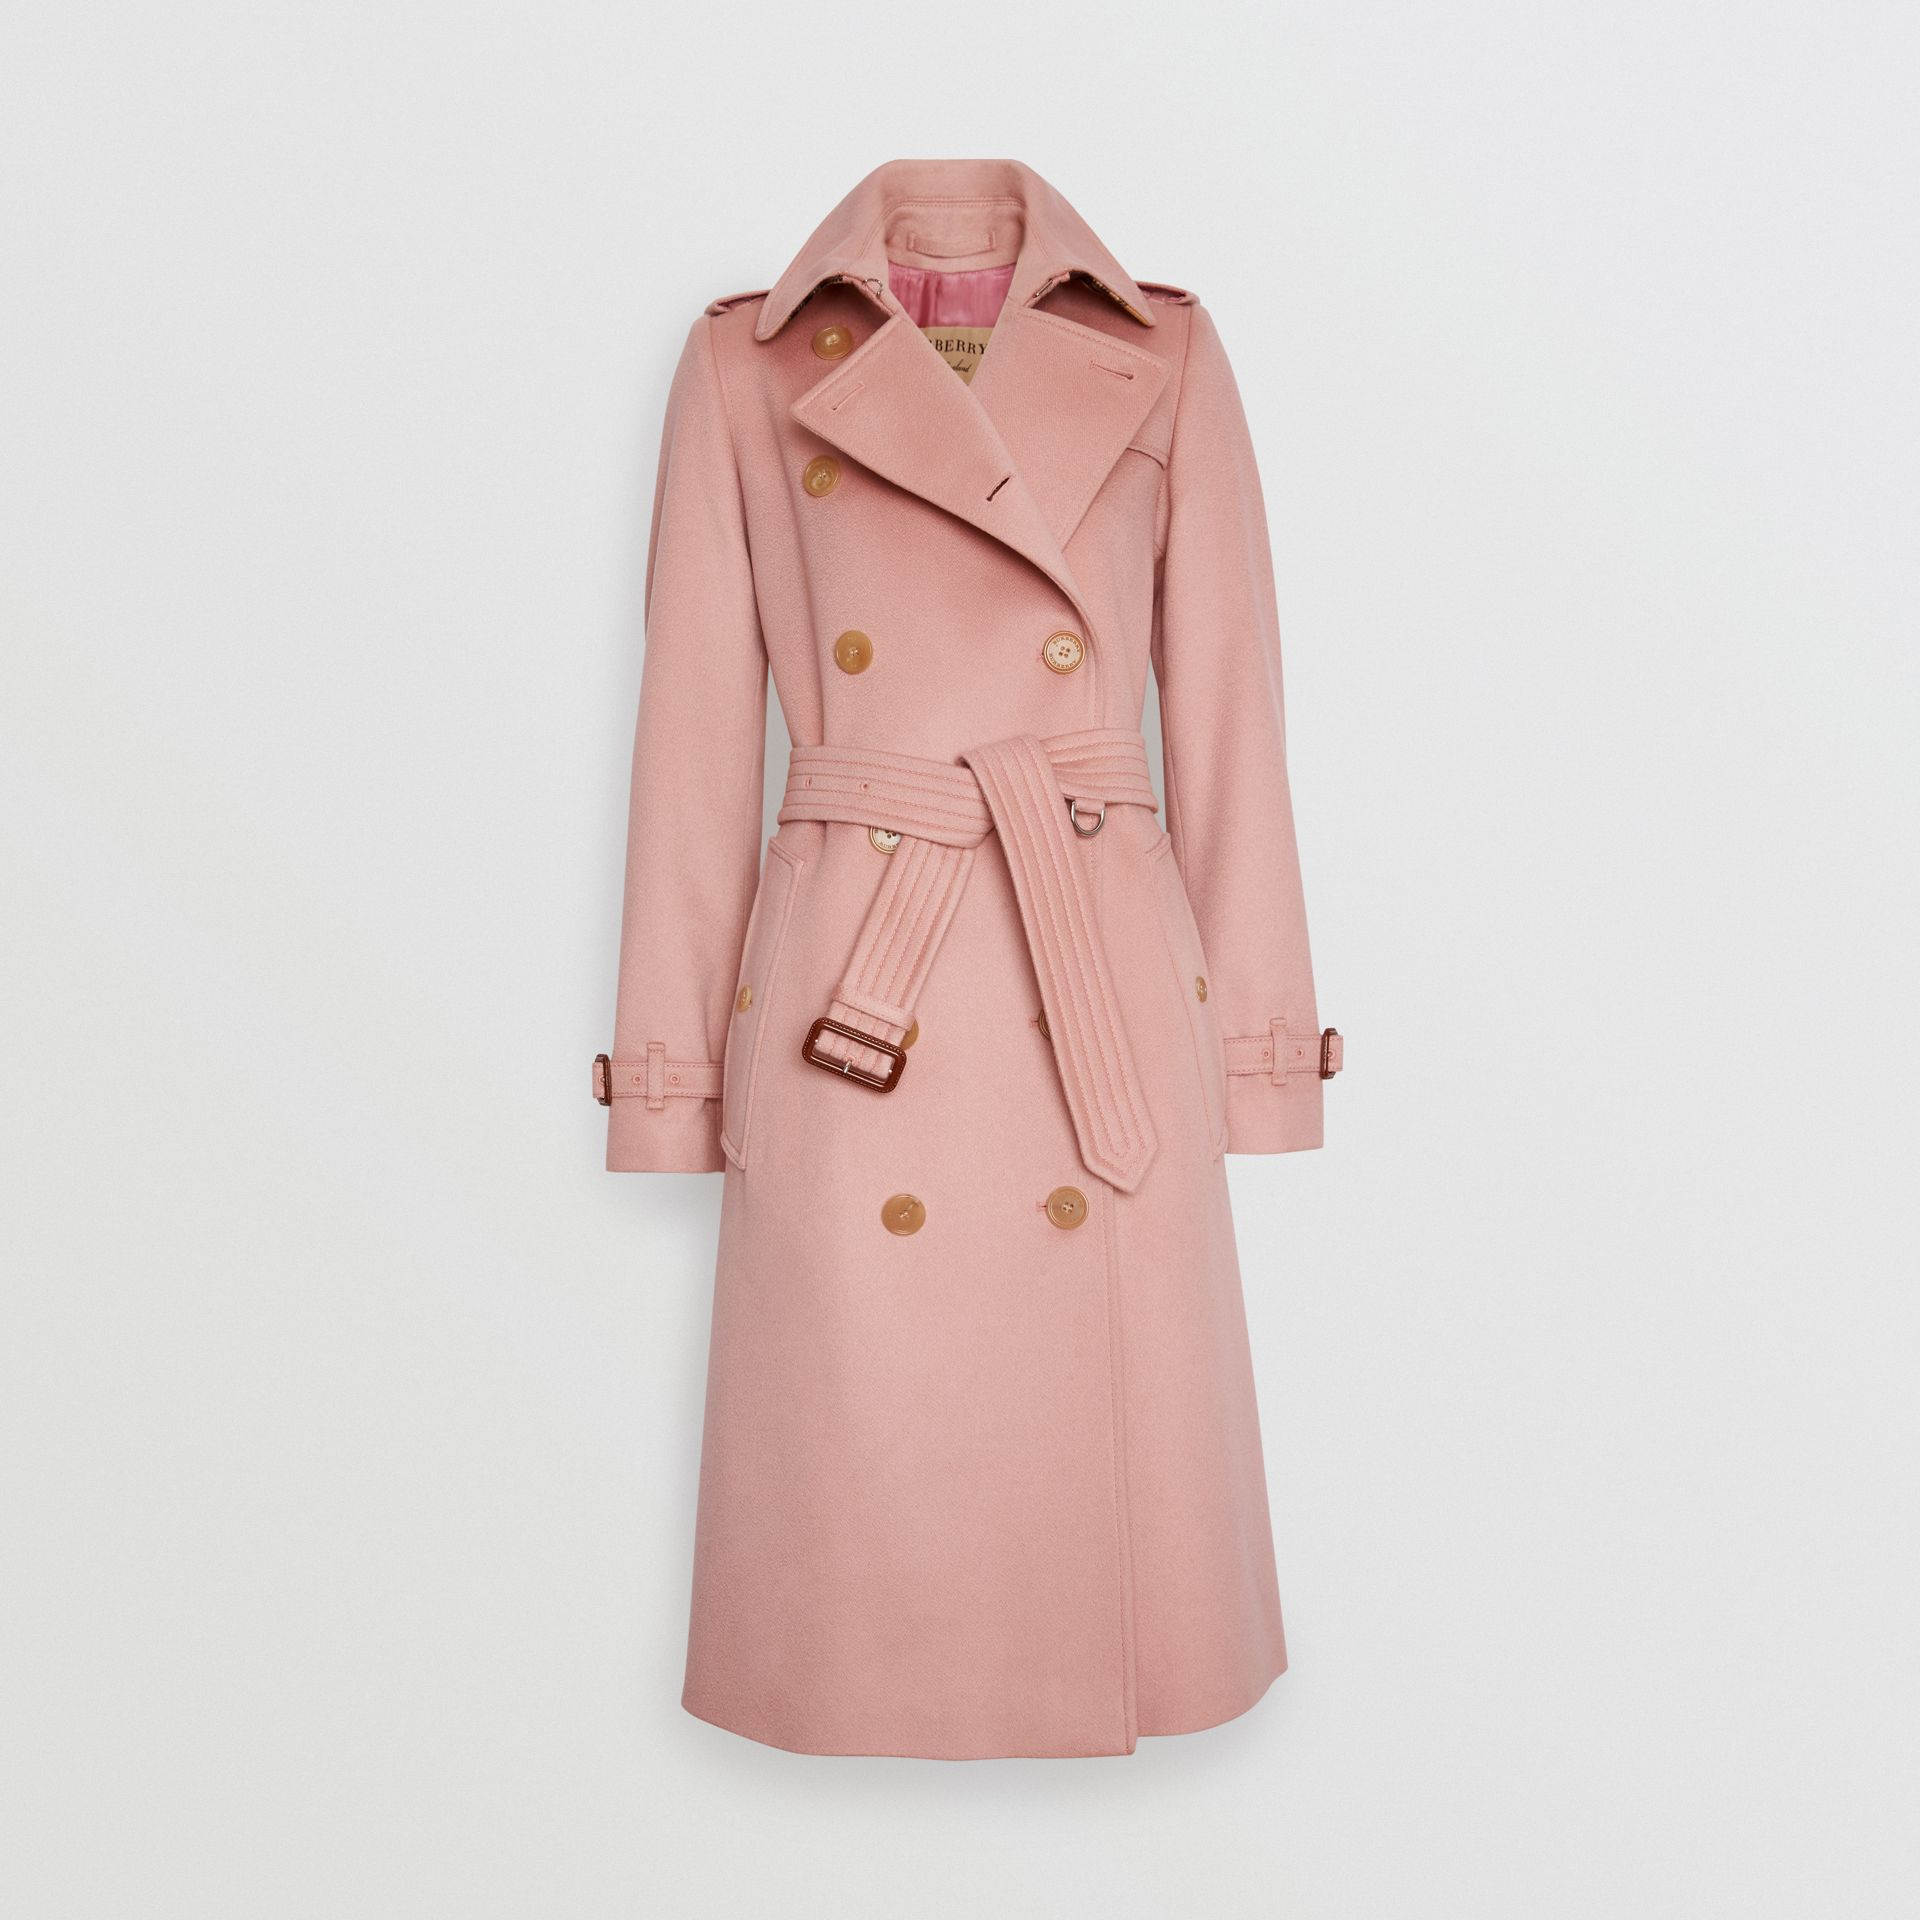 Cashmere Trench Coat in Chalk Pink - Women | Burberry - gallery image 3